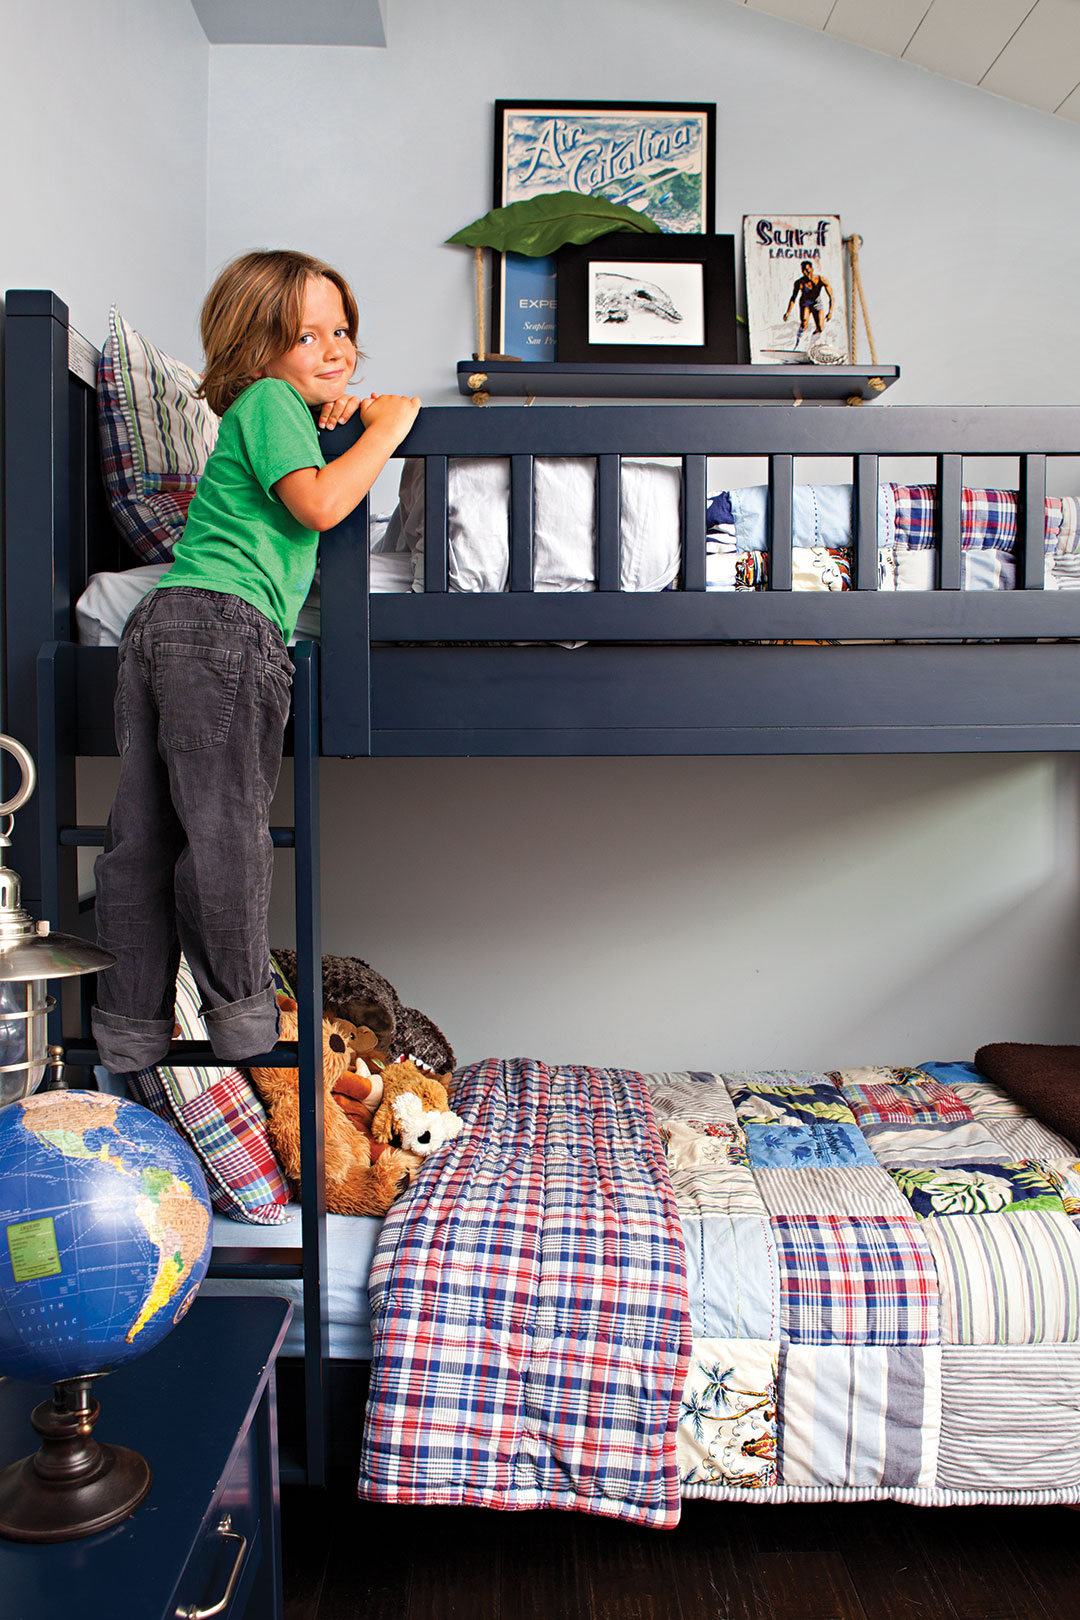 Boy's bedroom decor with navy blue bunk bed and plaid sheets